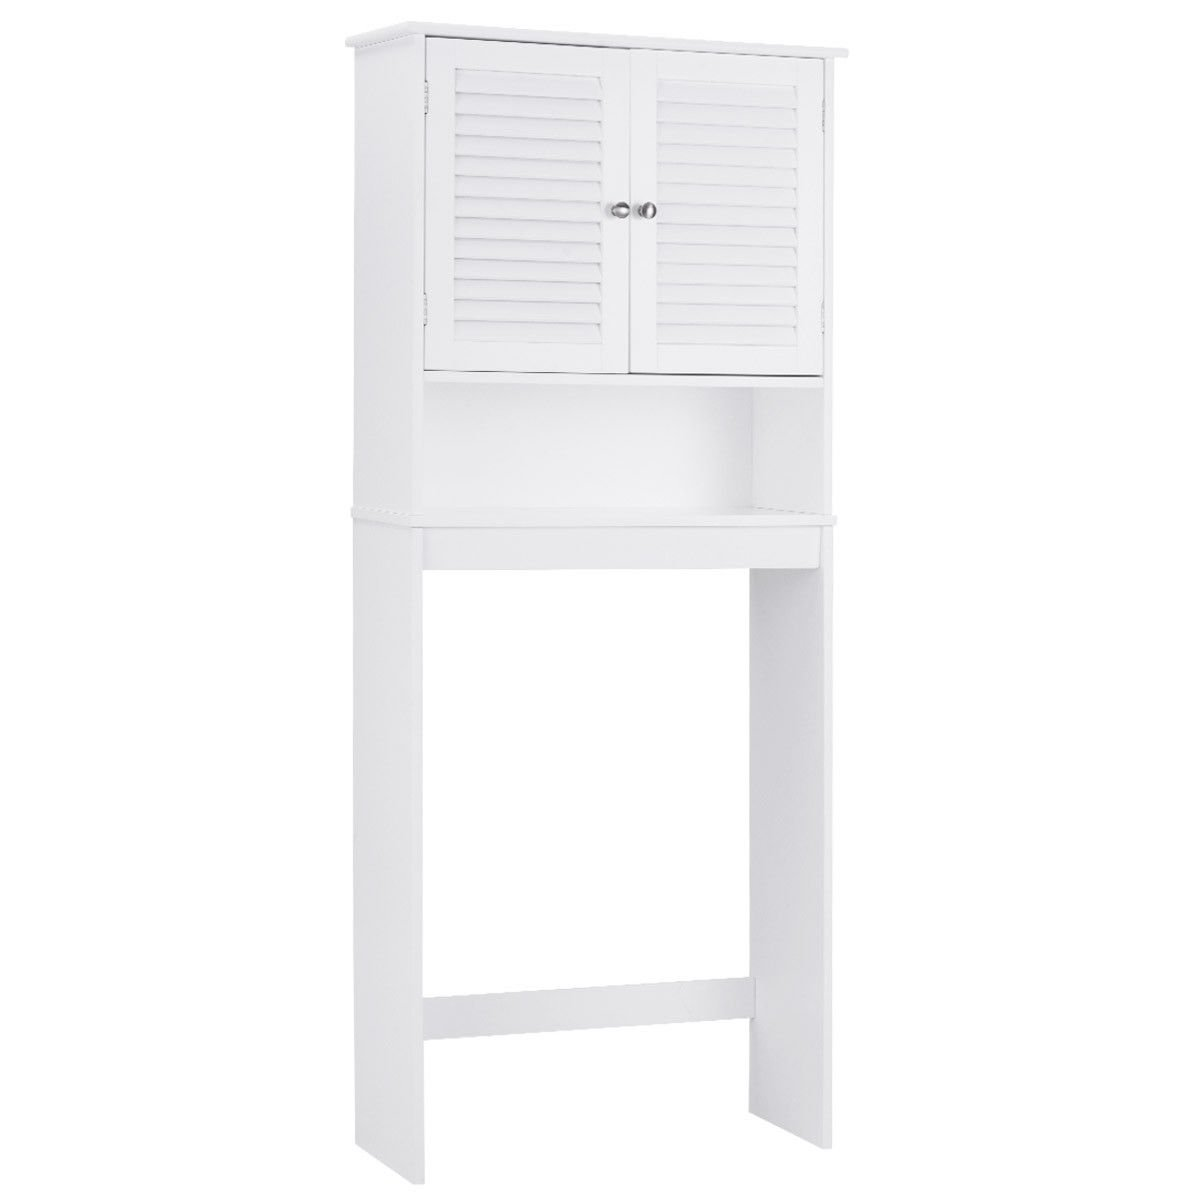 Bathroom Space Saver Over The Toilet Shelved Storage Cabinet Organizer White New